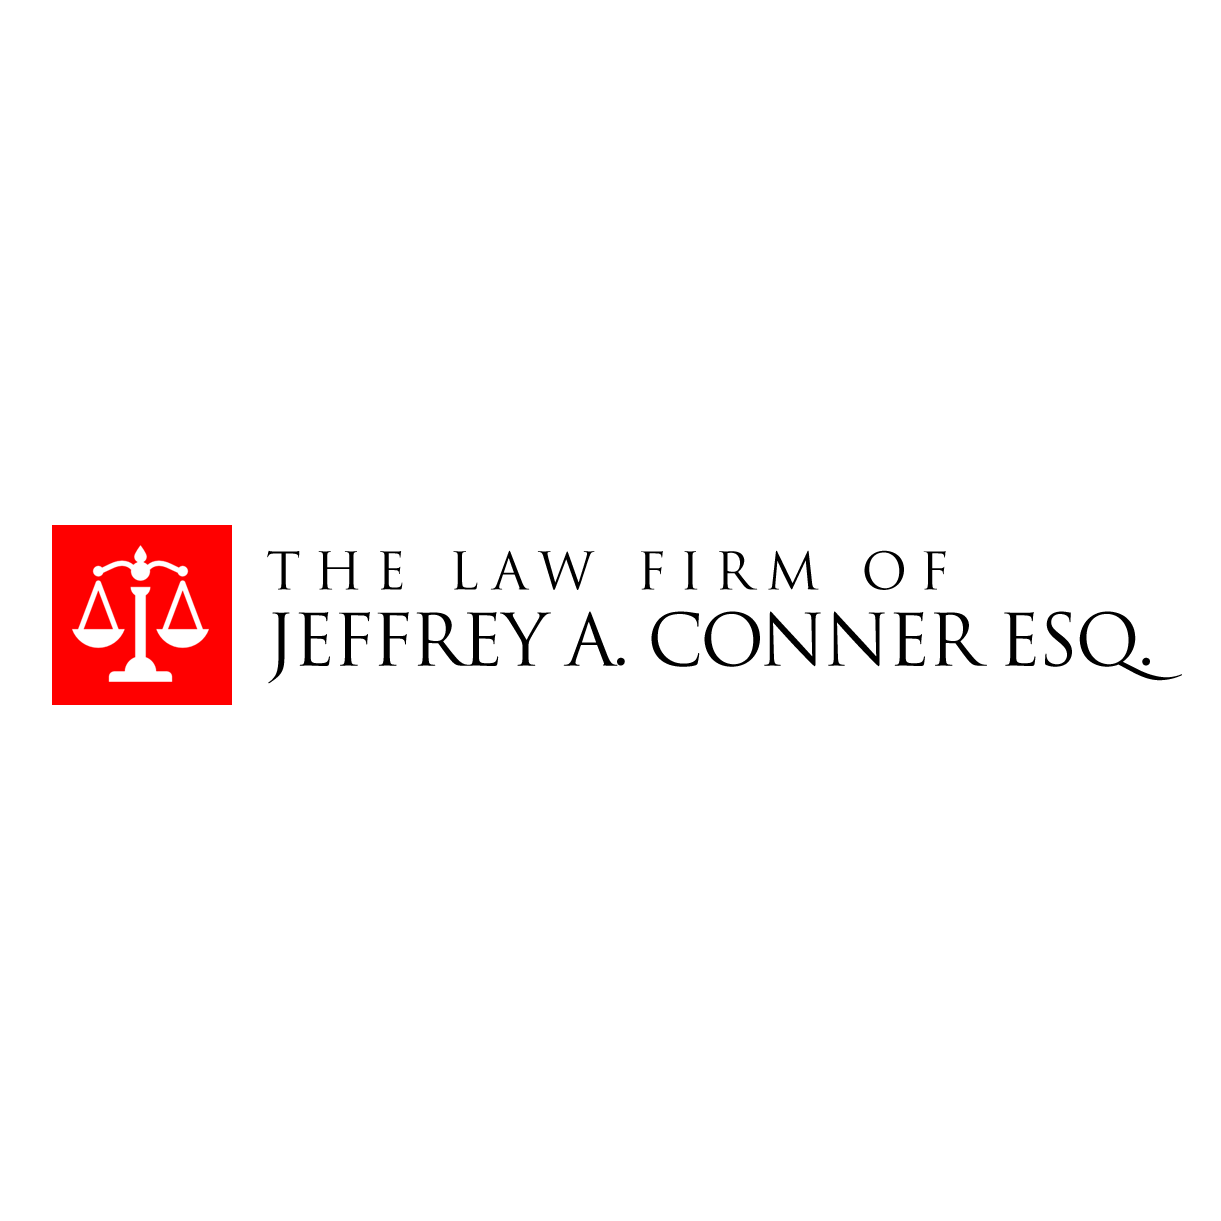 The Law Firm of Jeffery A. Conner Esq.